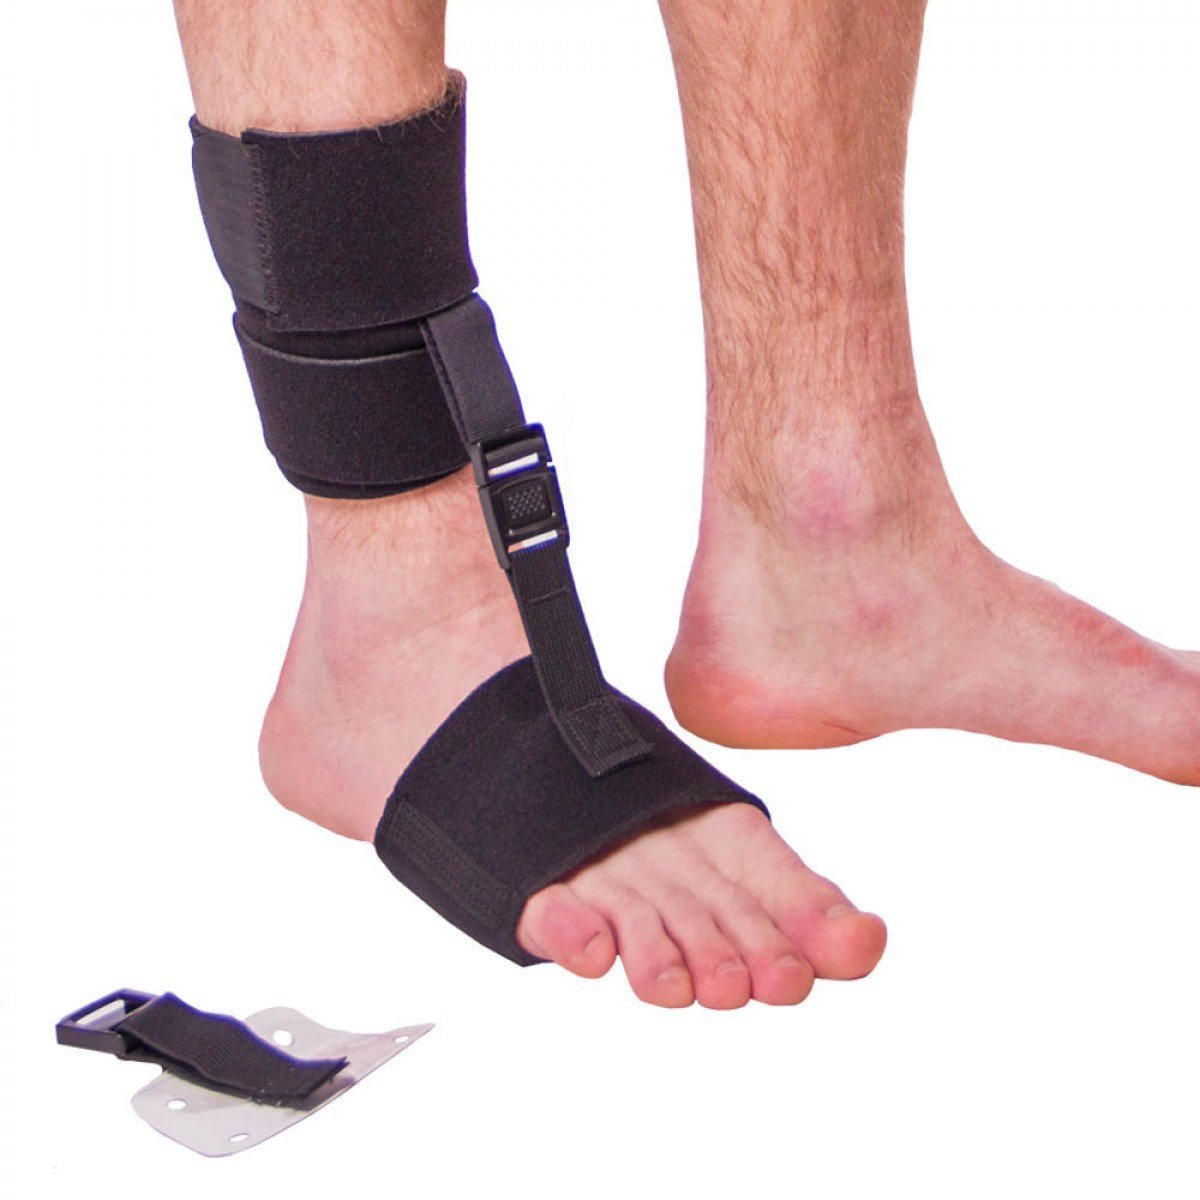 Soft AFO Foot Drop Brace   Ankle Foot Orthosis Keeps Foot Up for Dorsiflexion Assist, Improved Gait, Prevents Cramps (L/XL - Fits Right or Left Foot)